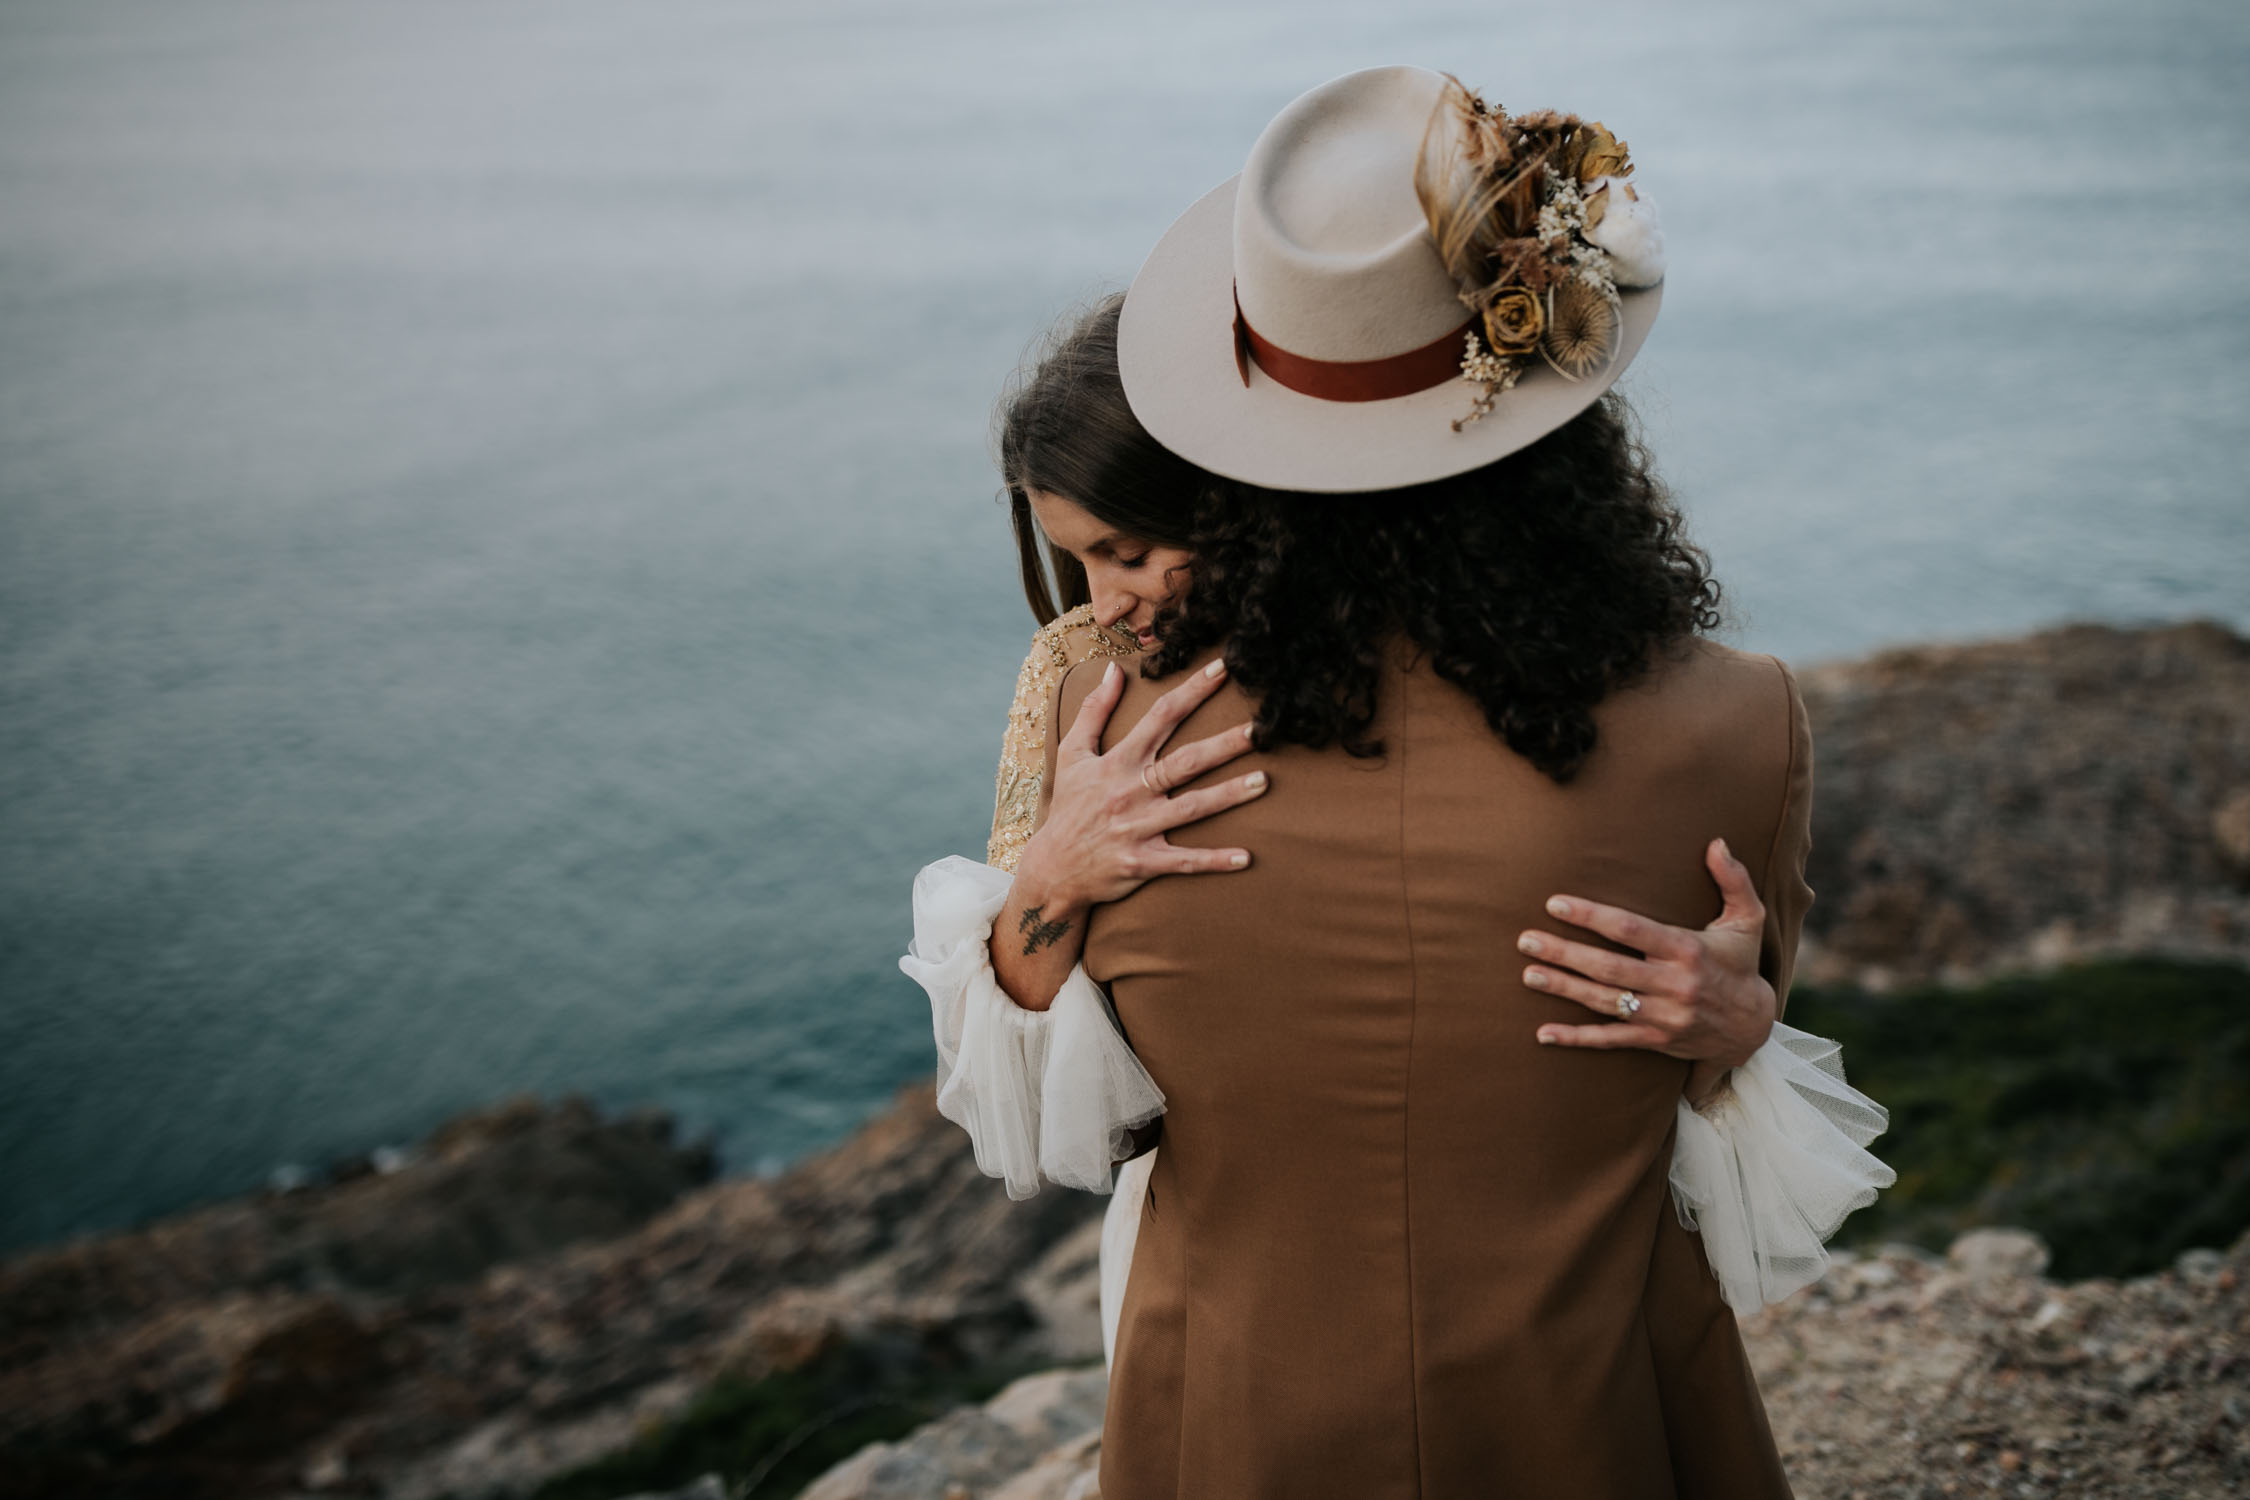 Bride affectionately holds onto her groom as they stand on a cliff overlooking the beach and sea at boho wedding shoot